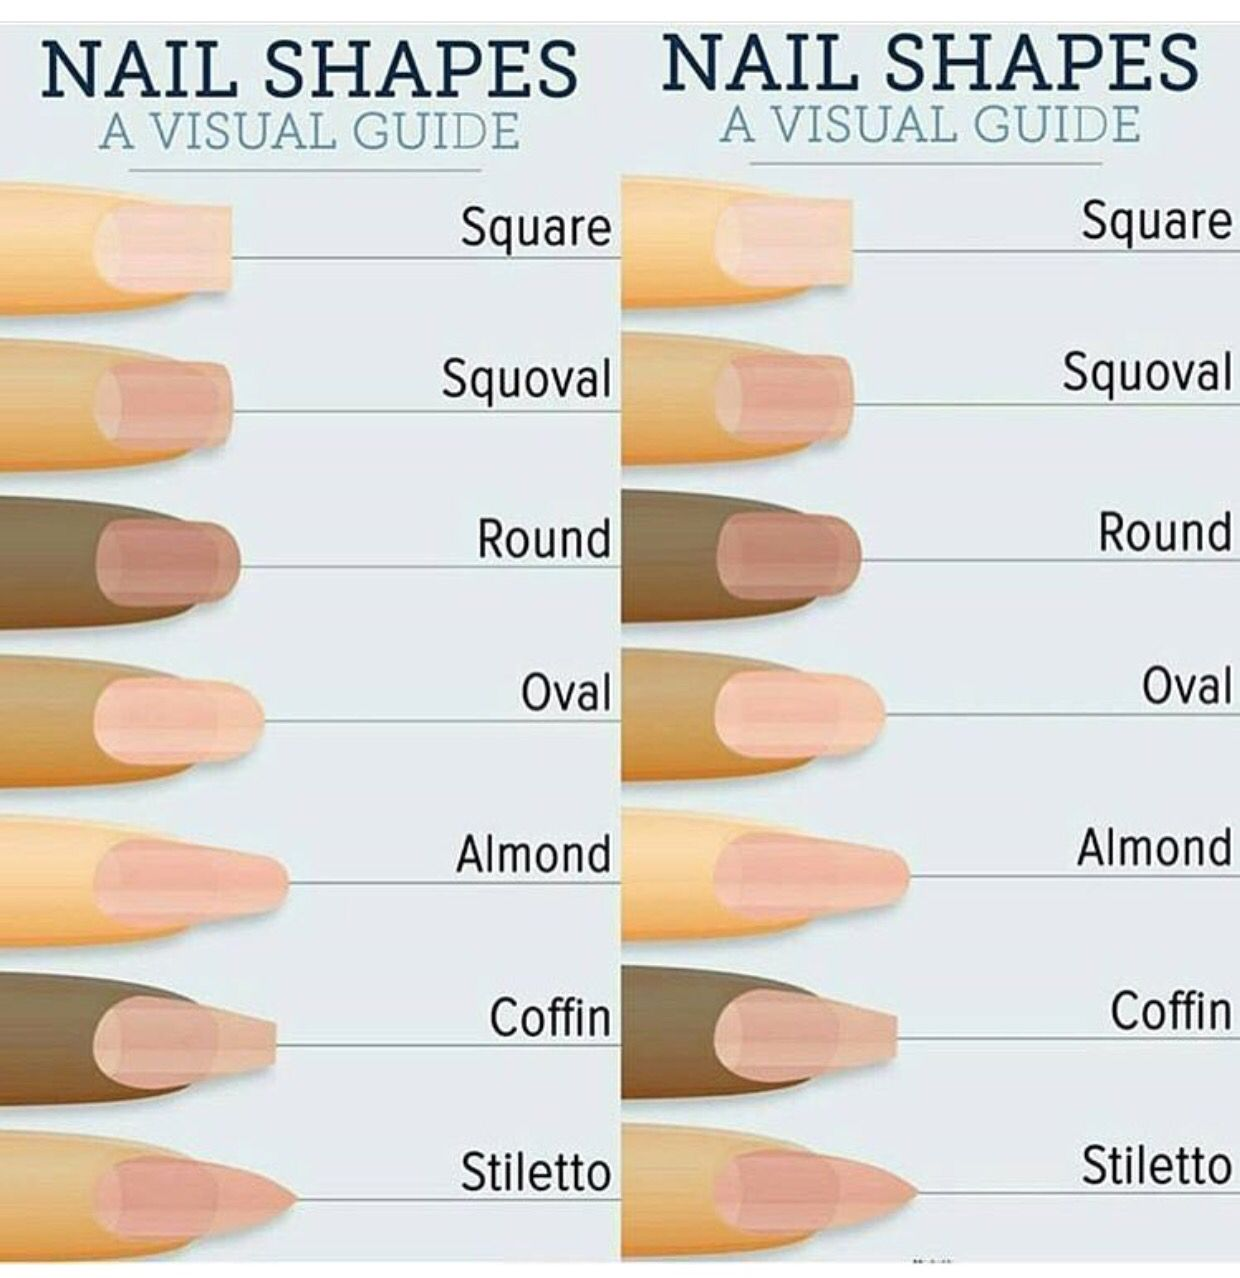 Nail Shapes With Images Fake Nails Shape Types Of Nails